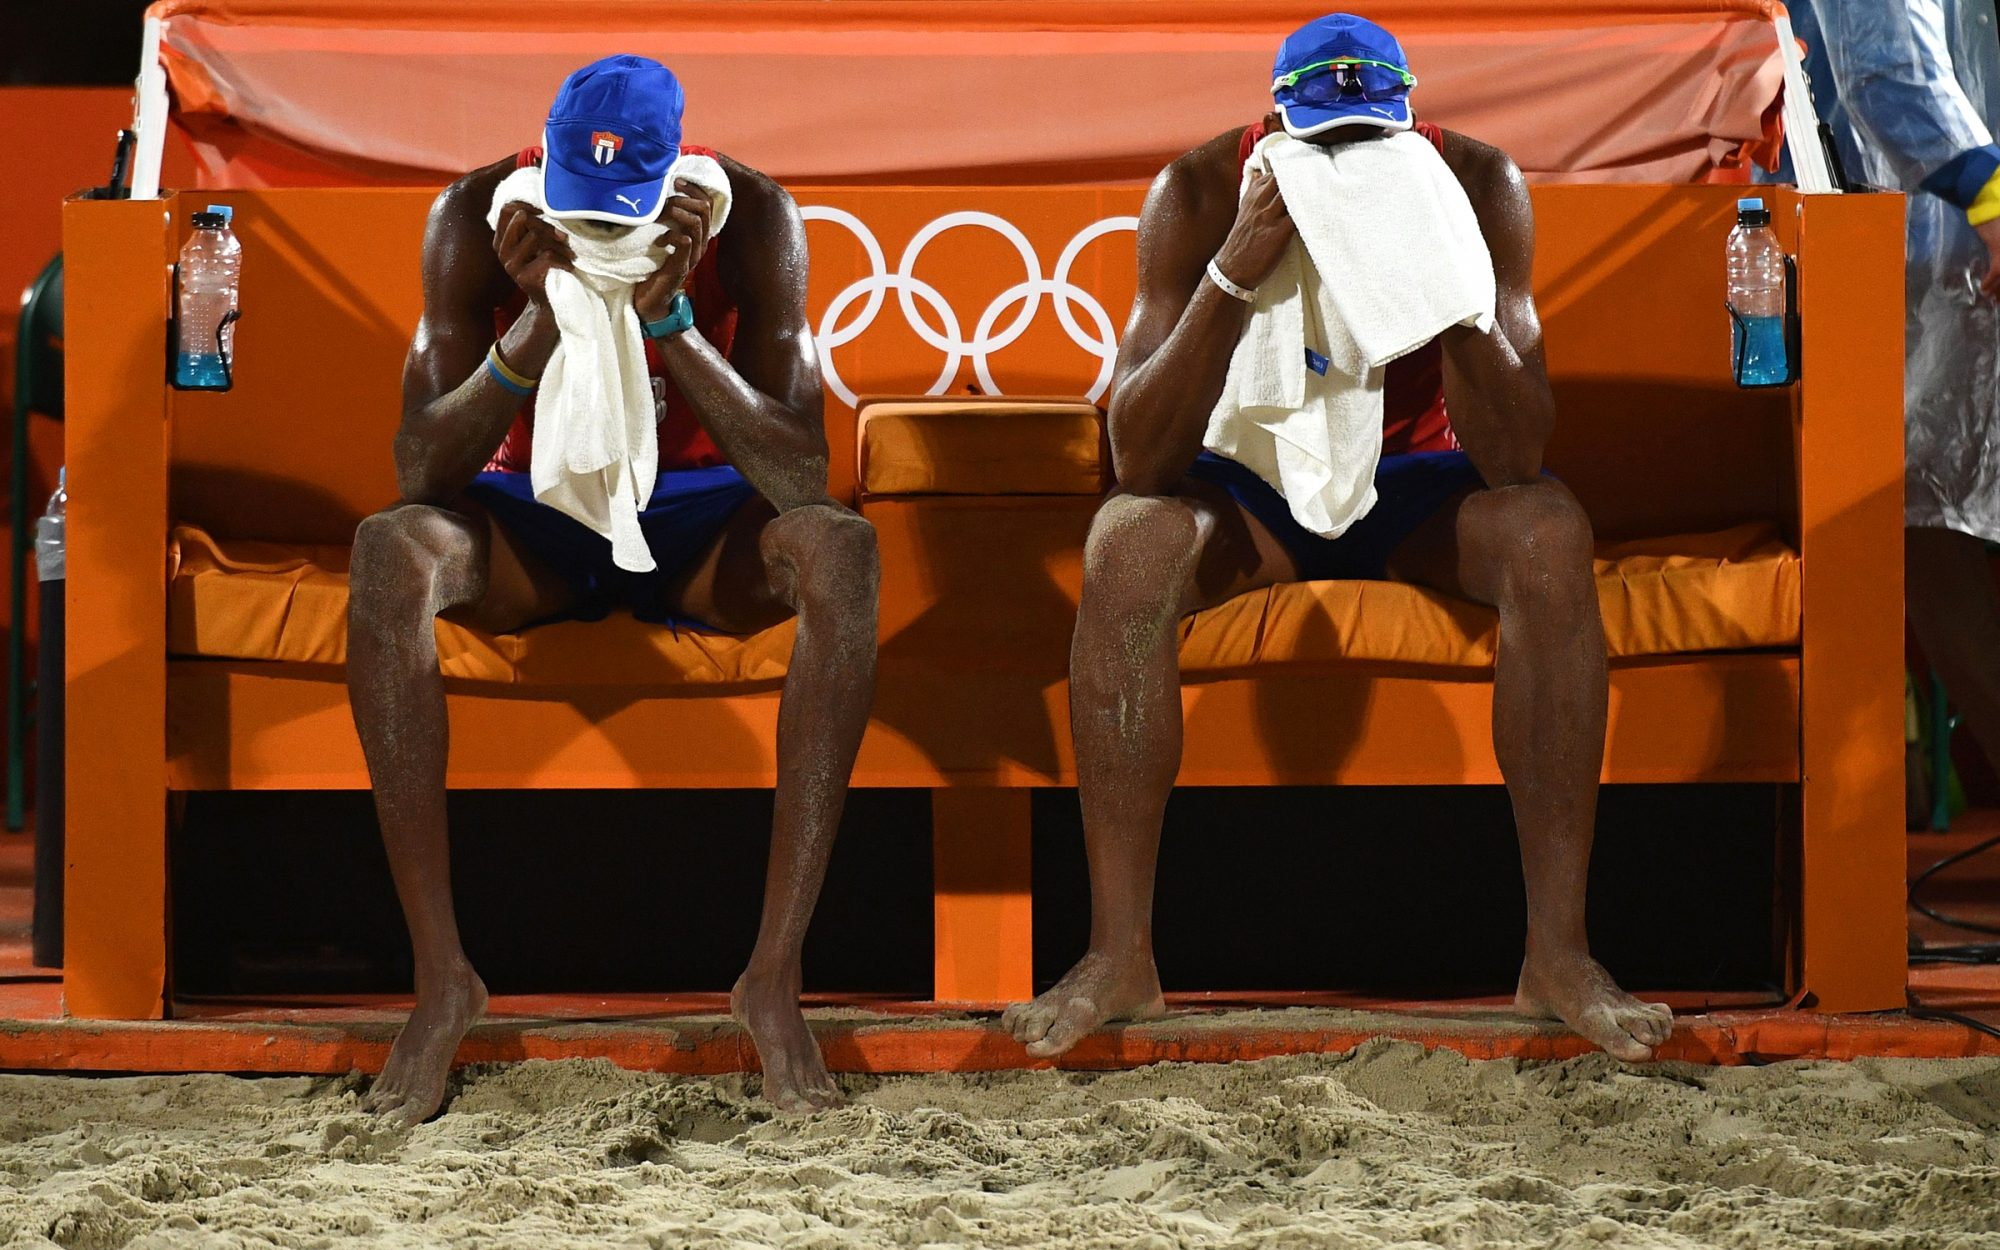 Most Cities on Earth Will Be Too Hot to Host the Summer Olympics by 2085